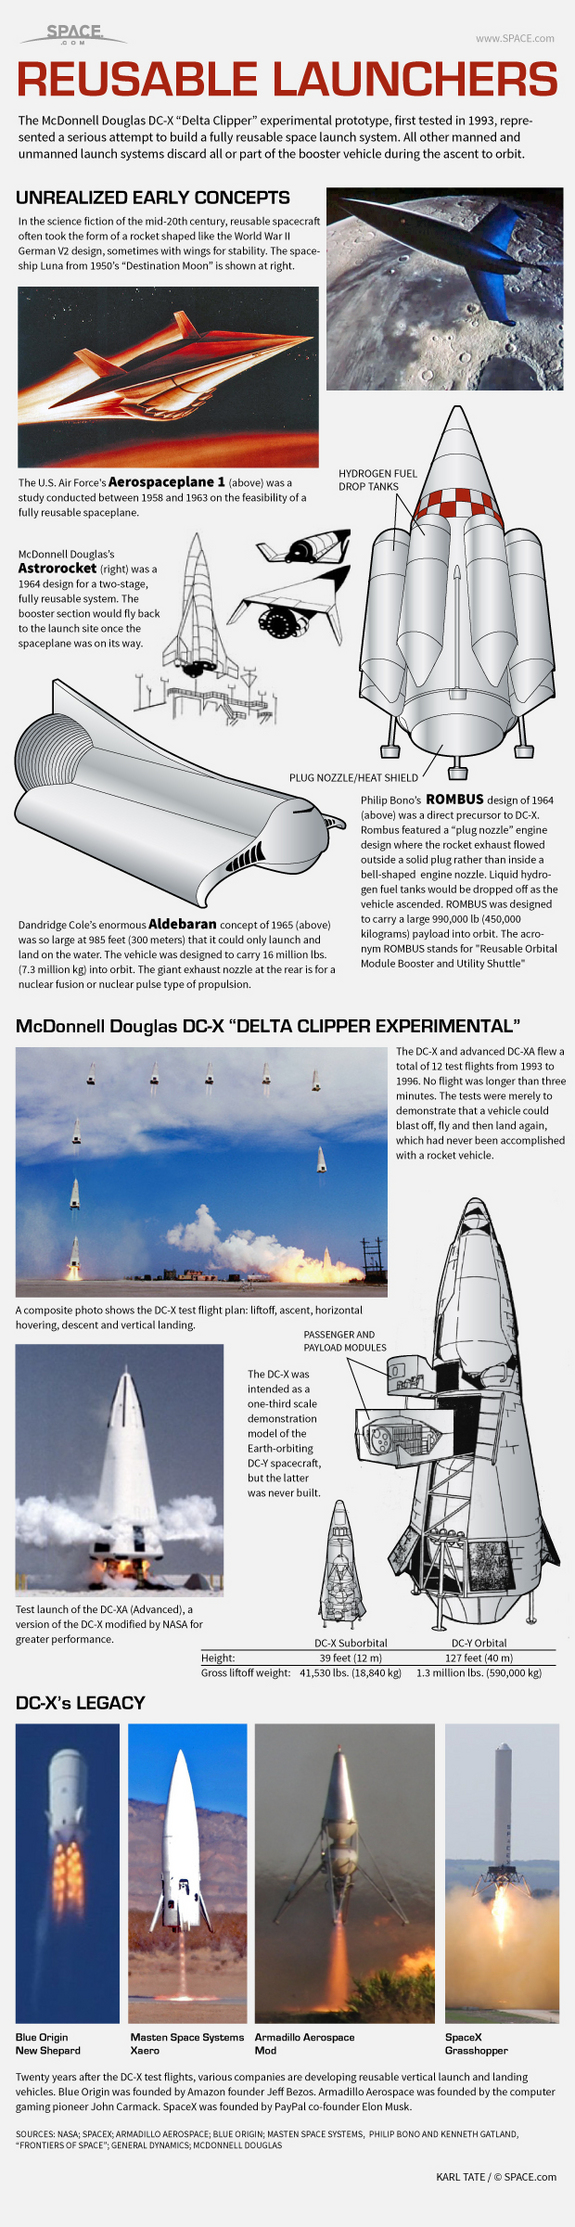 Find out about DC-X, a prototype reusable space launch system, in this SPACE.com infographic.